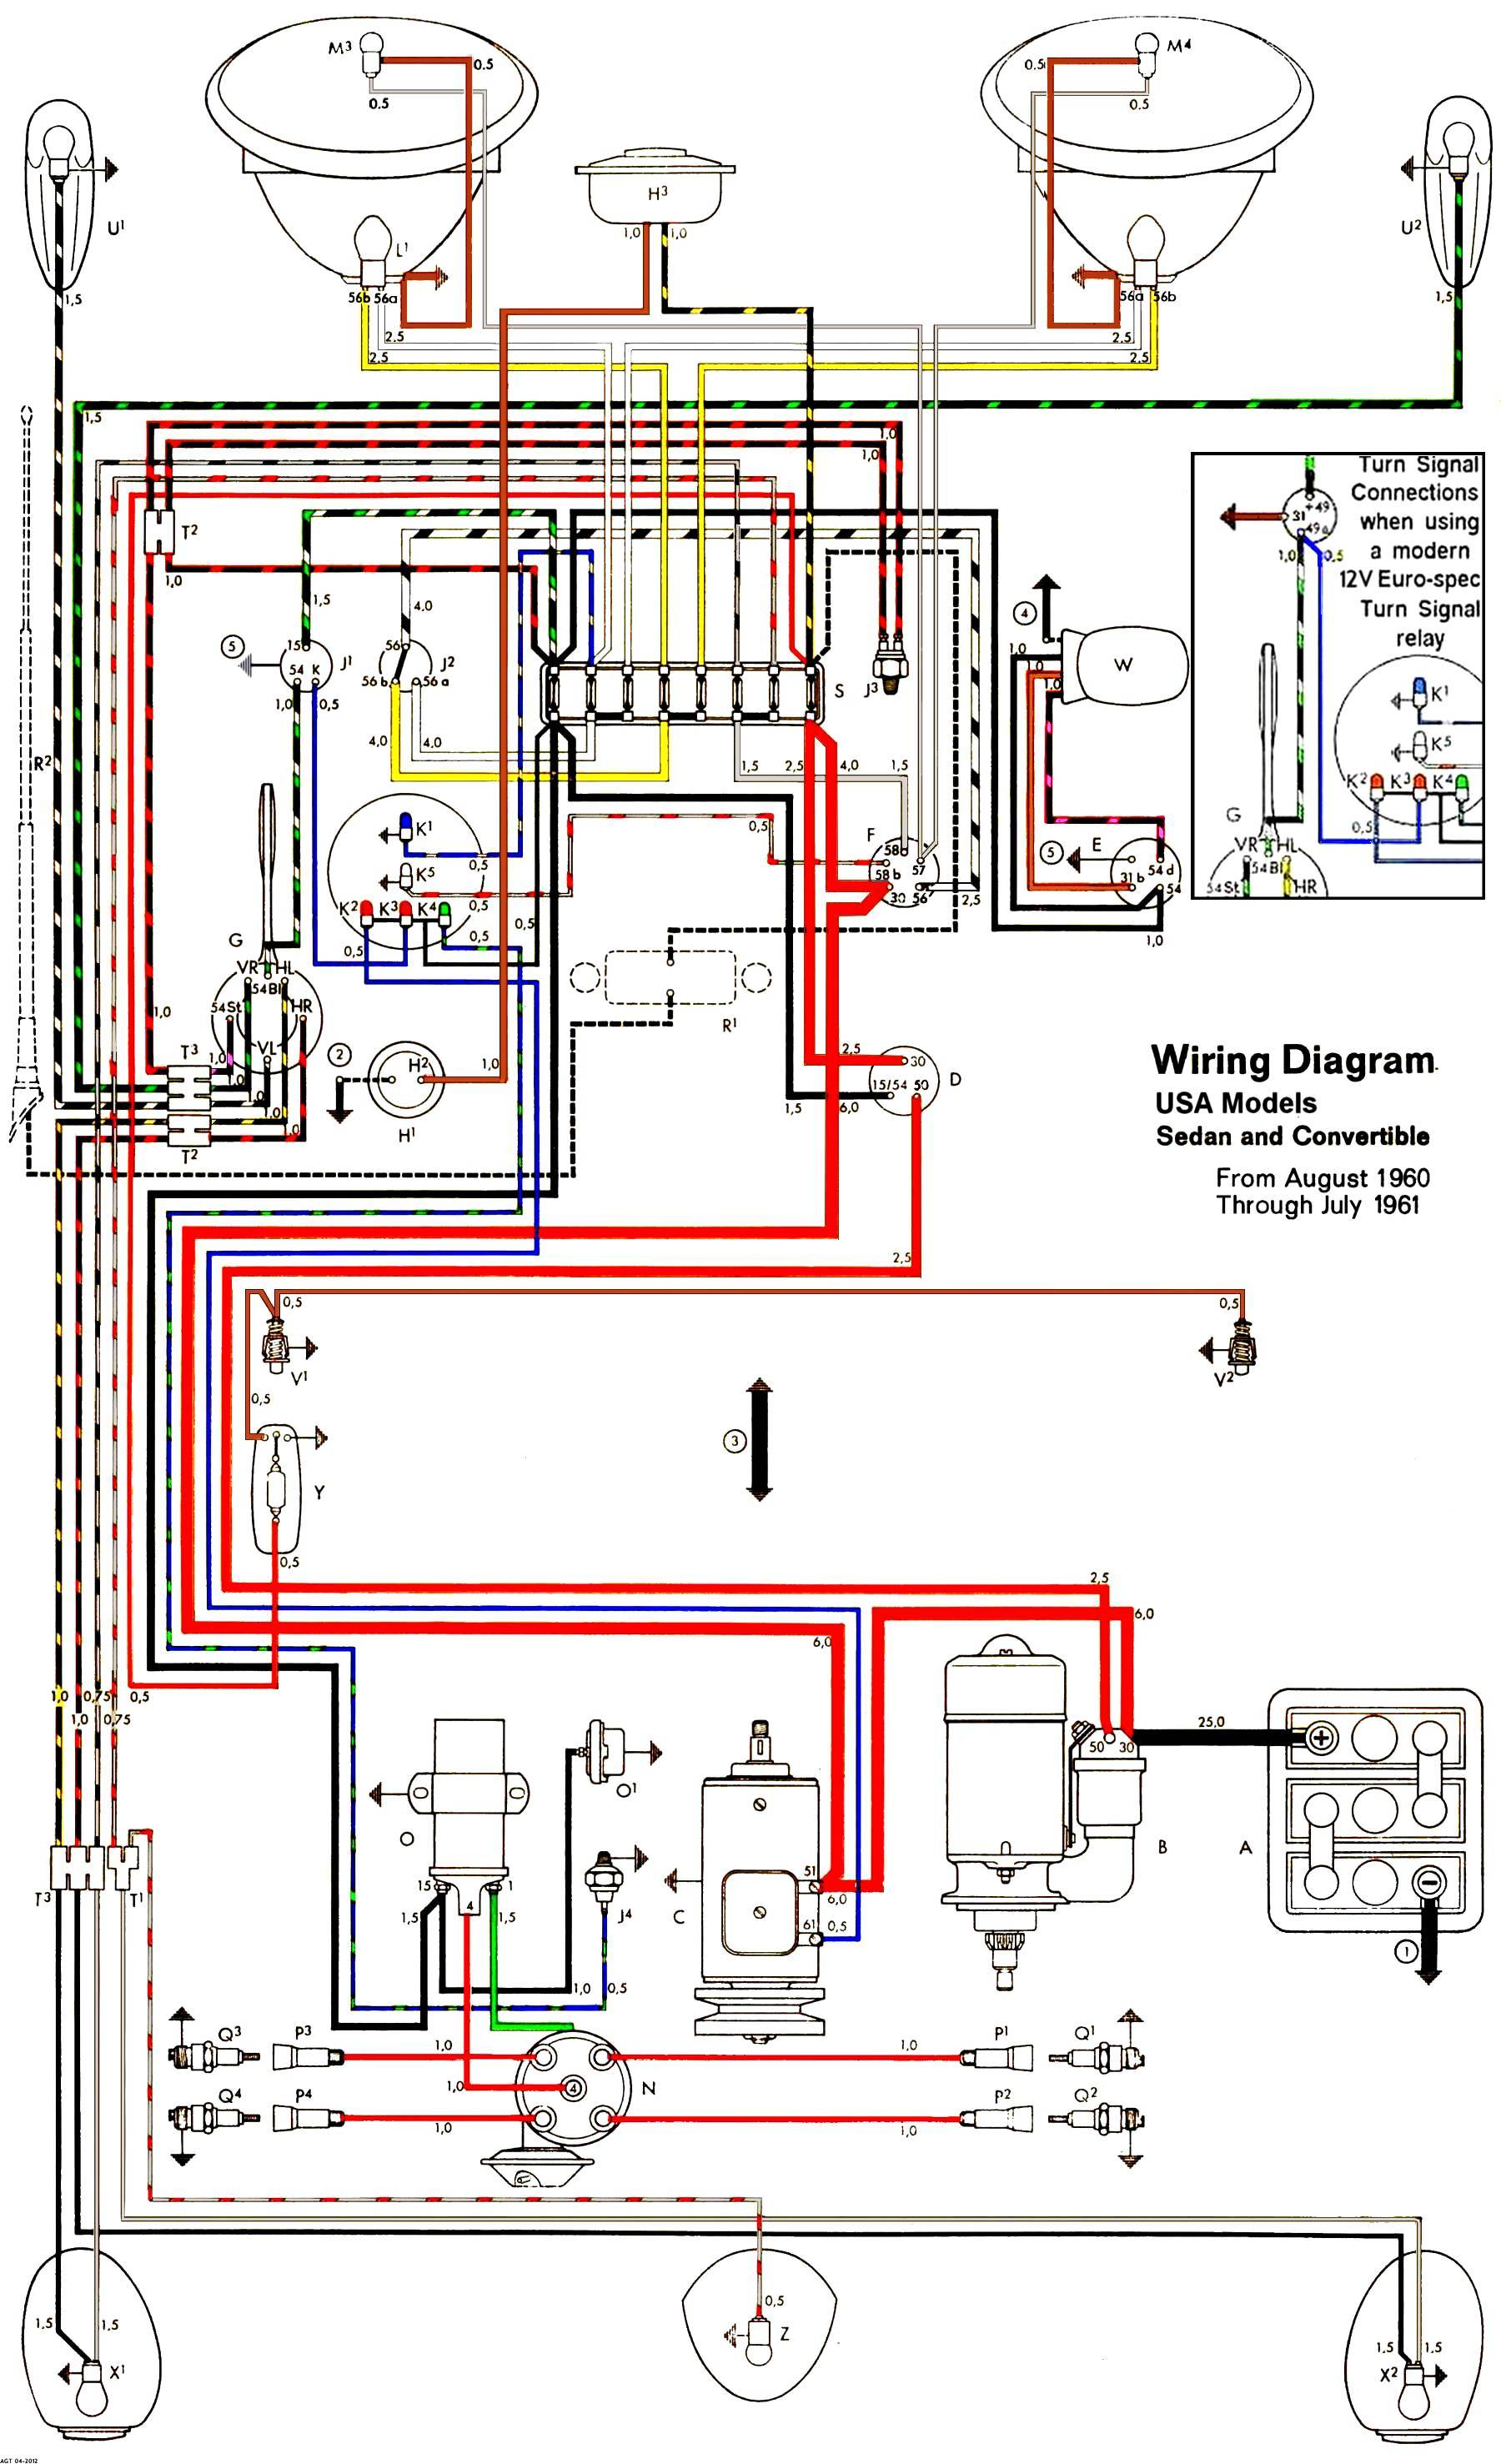 vw alternator wire diagram 1 schematic wiring diagram VW Generator to Alternator Conversion